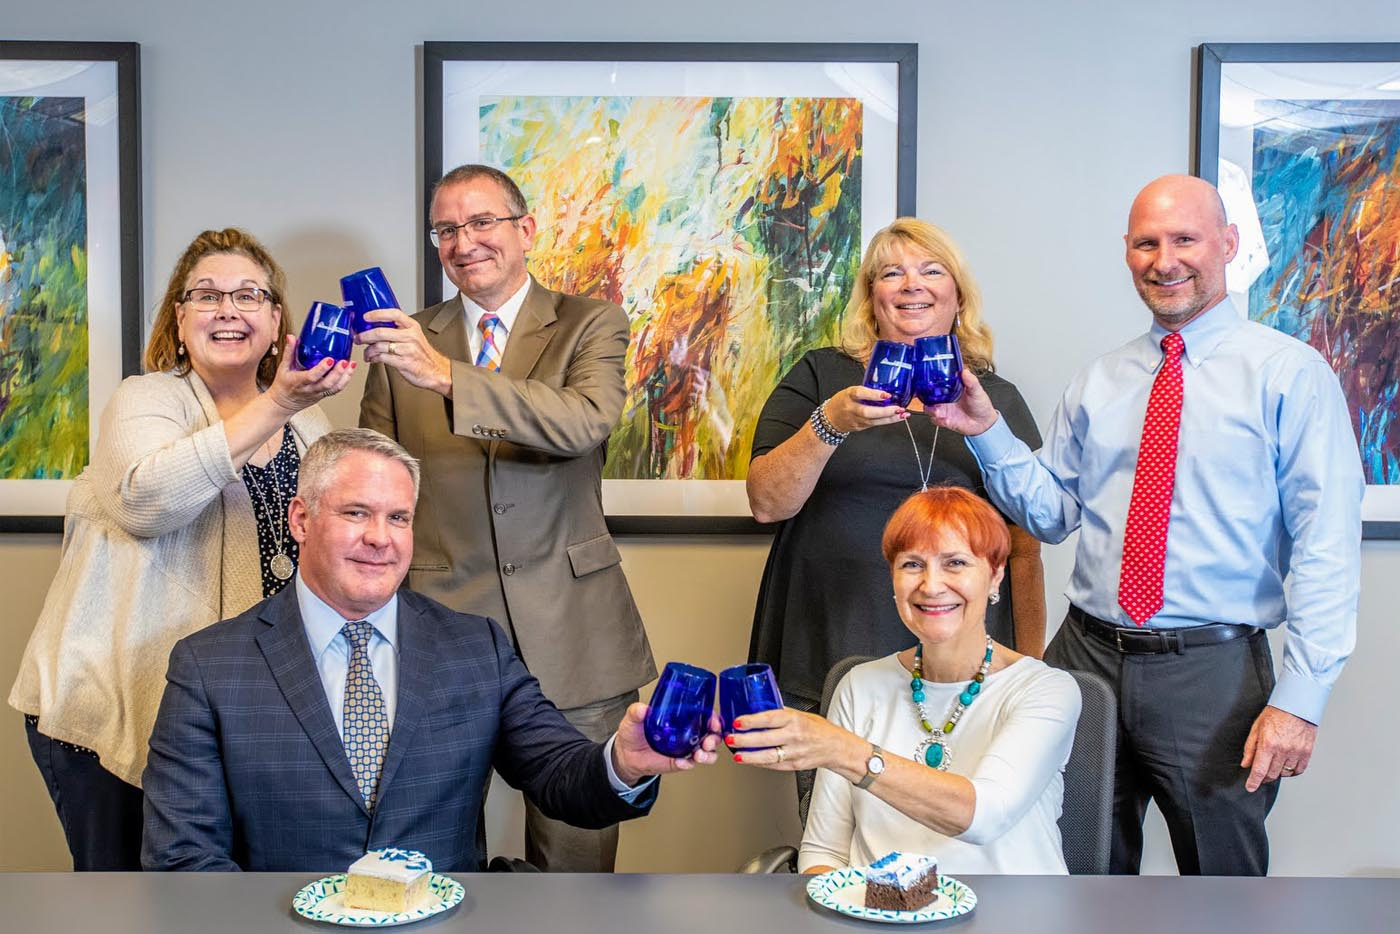 St. Andrew's and Bethesda's Home Health Celebrates 10 years